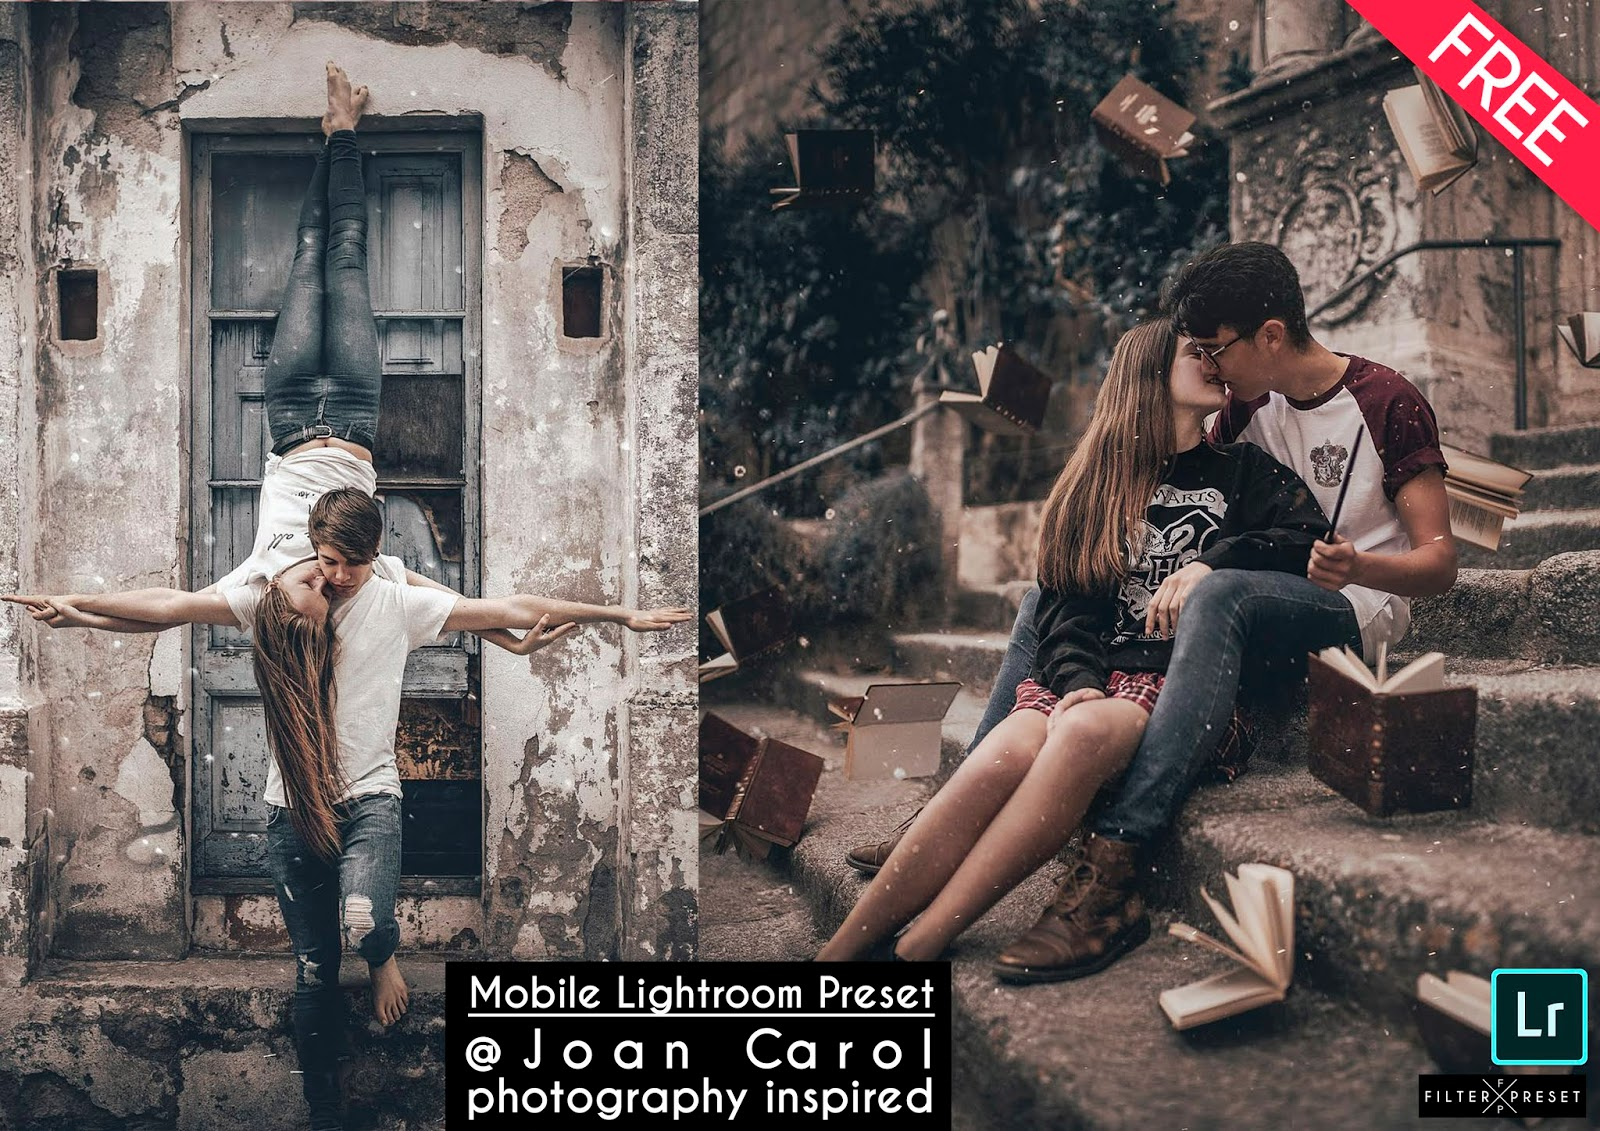 Download @Joan Carol Photography Inspired Mobile Lightroom Preset for Free